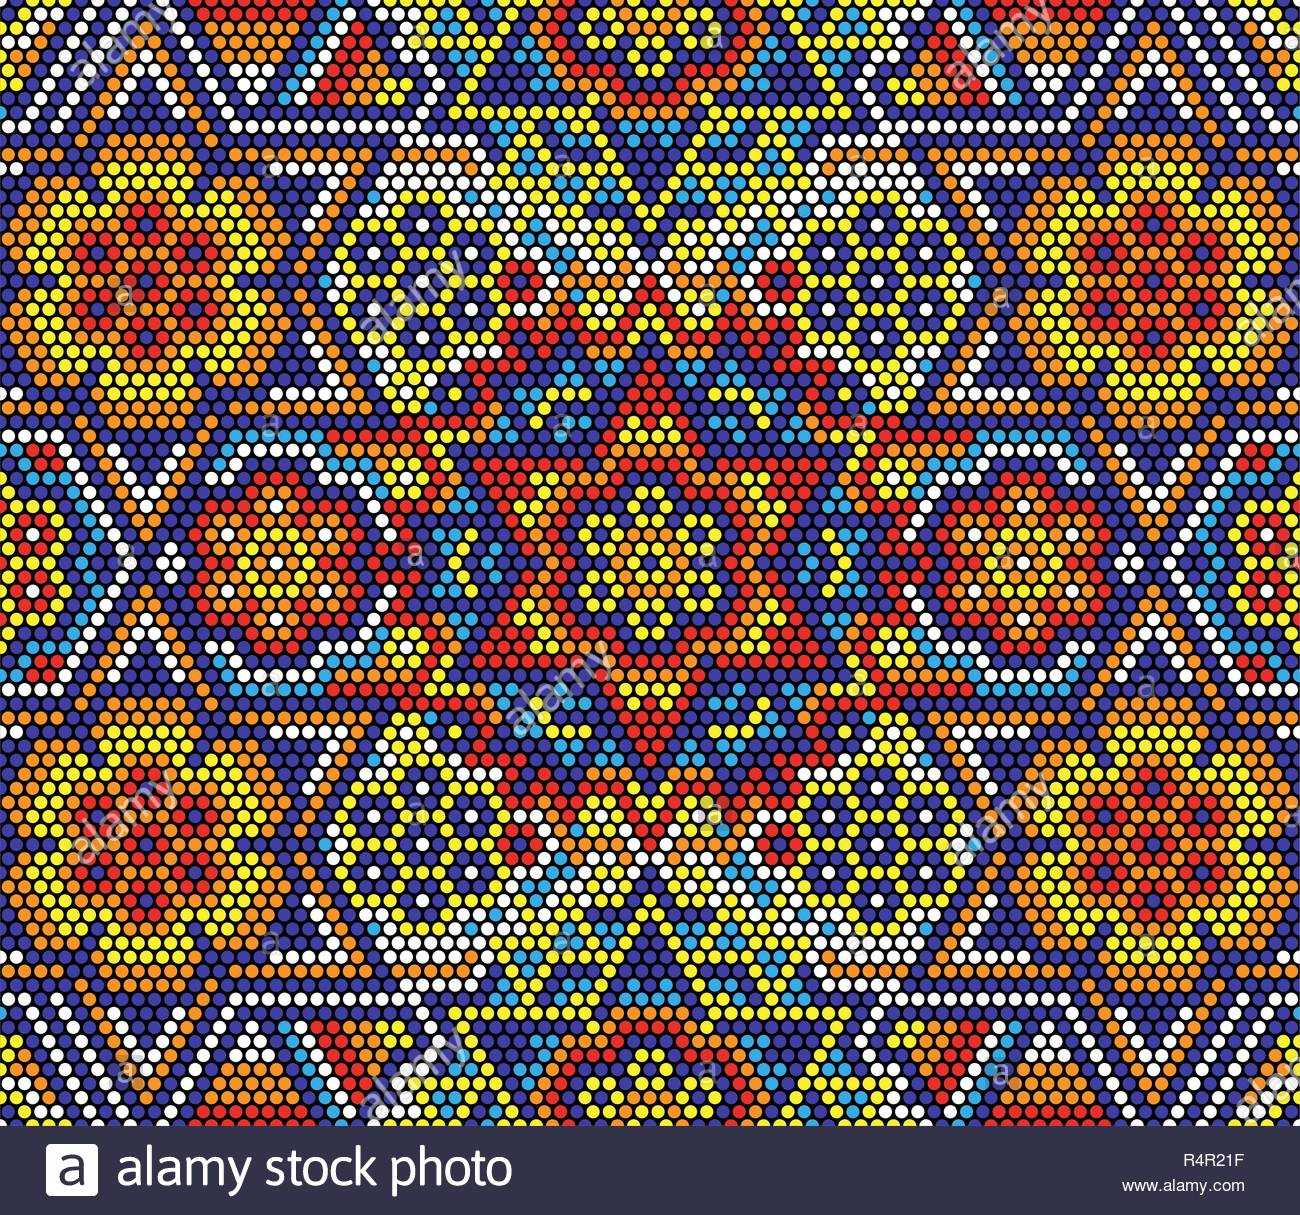 vector illustration of colorful abstract seamless pattern with 1300x1215